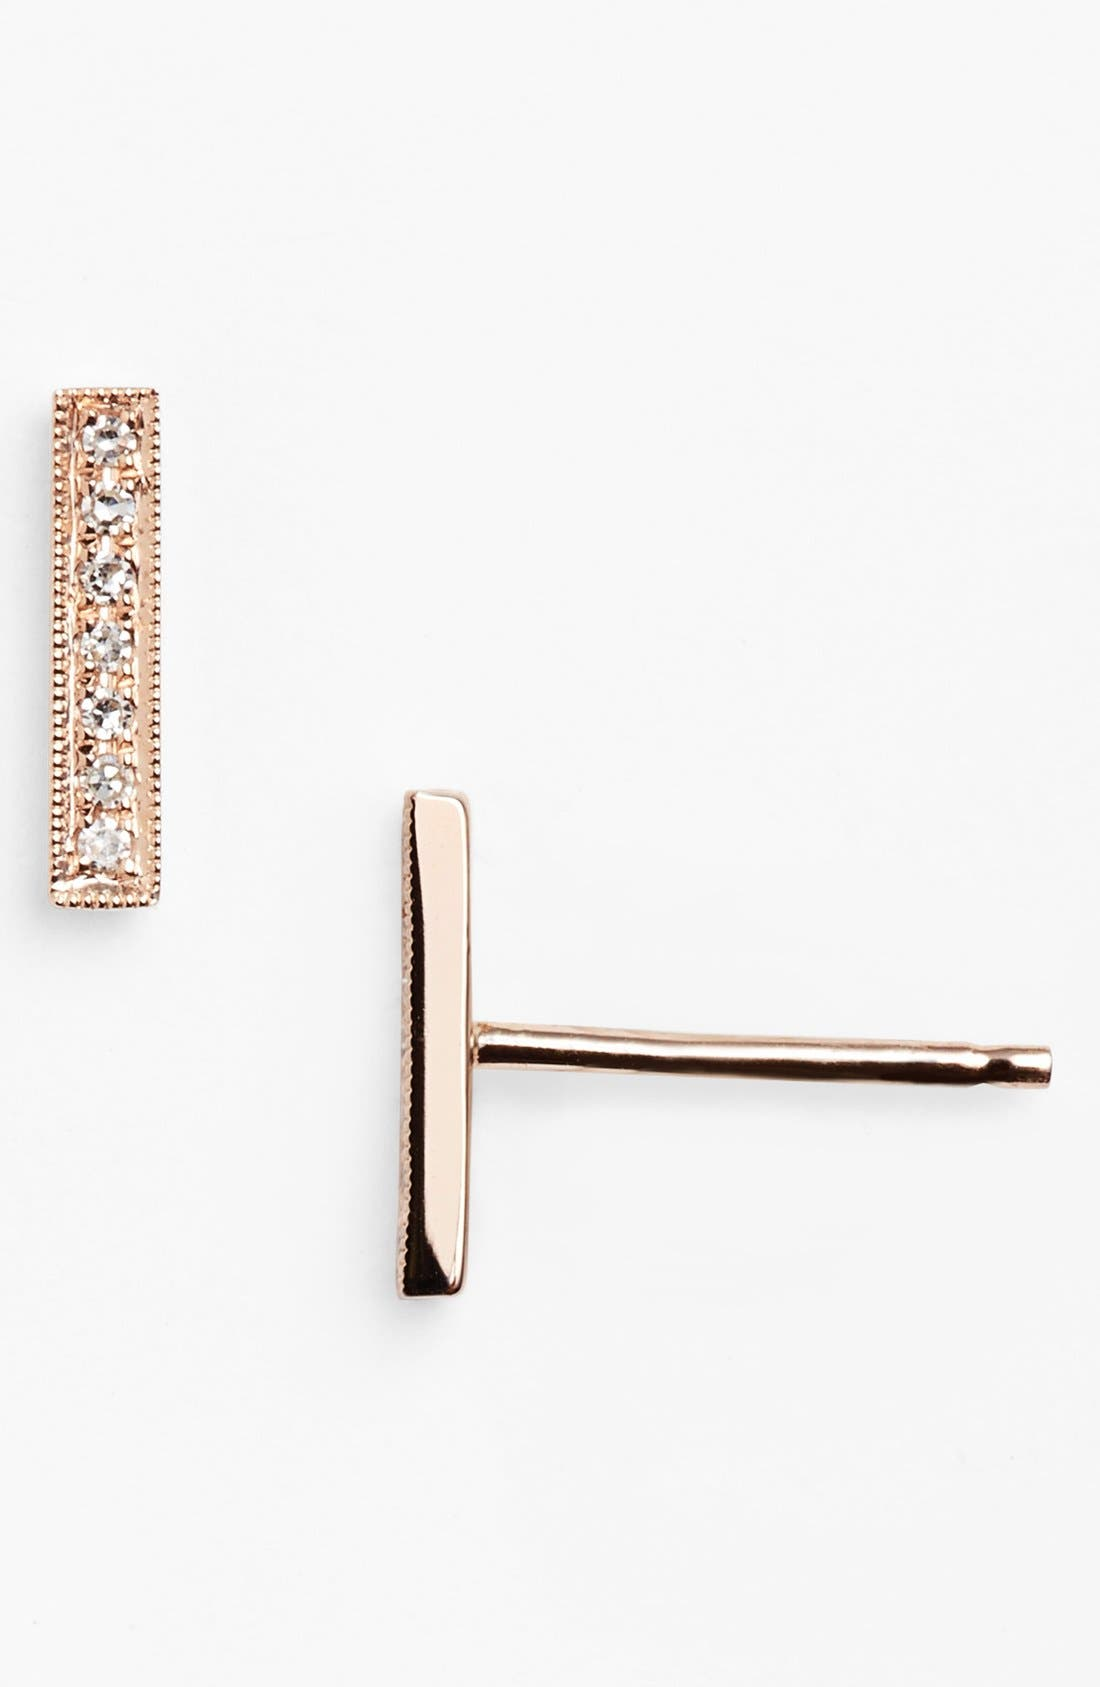 DANA REBECCA DESIGNS 'Sylvie Rose' Diamond Bar Stud